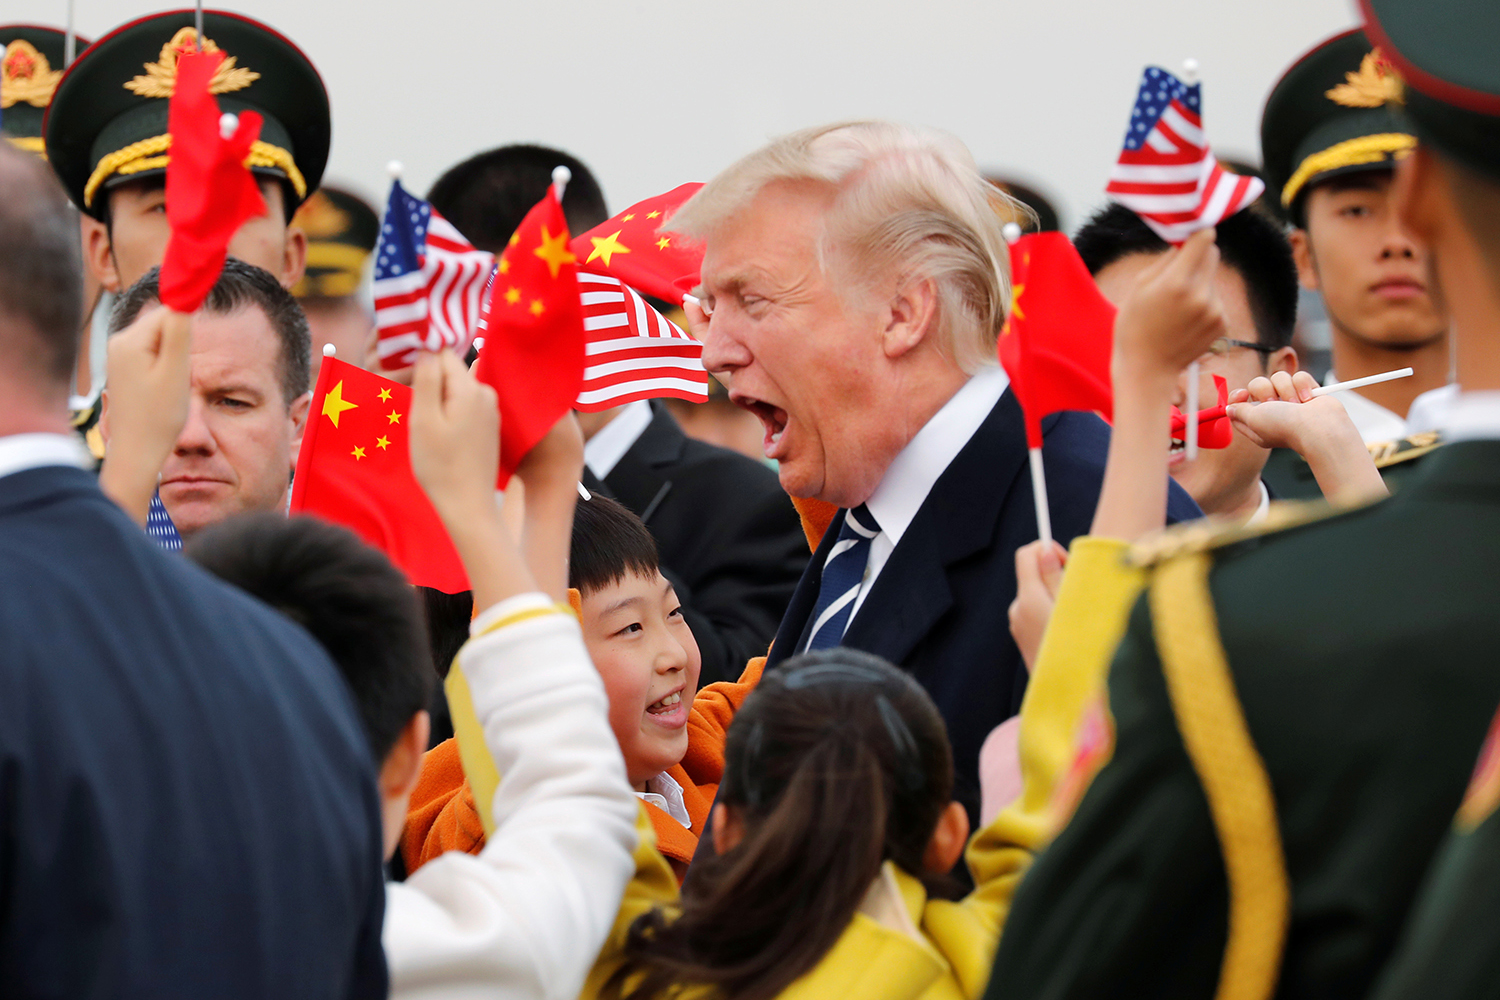 November 8, U.S. President Donald Trump and First Lady Melania arrive on Air Force One in Beijing. Despite his frequent harsh rhetoric about China, Trump seemed to bask in the pageantry of his November state visit. (Jonathan Ernst/Reuters)